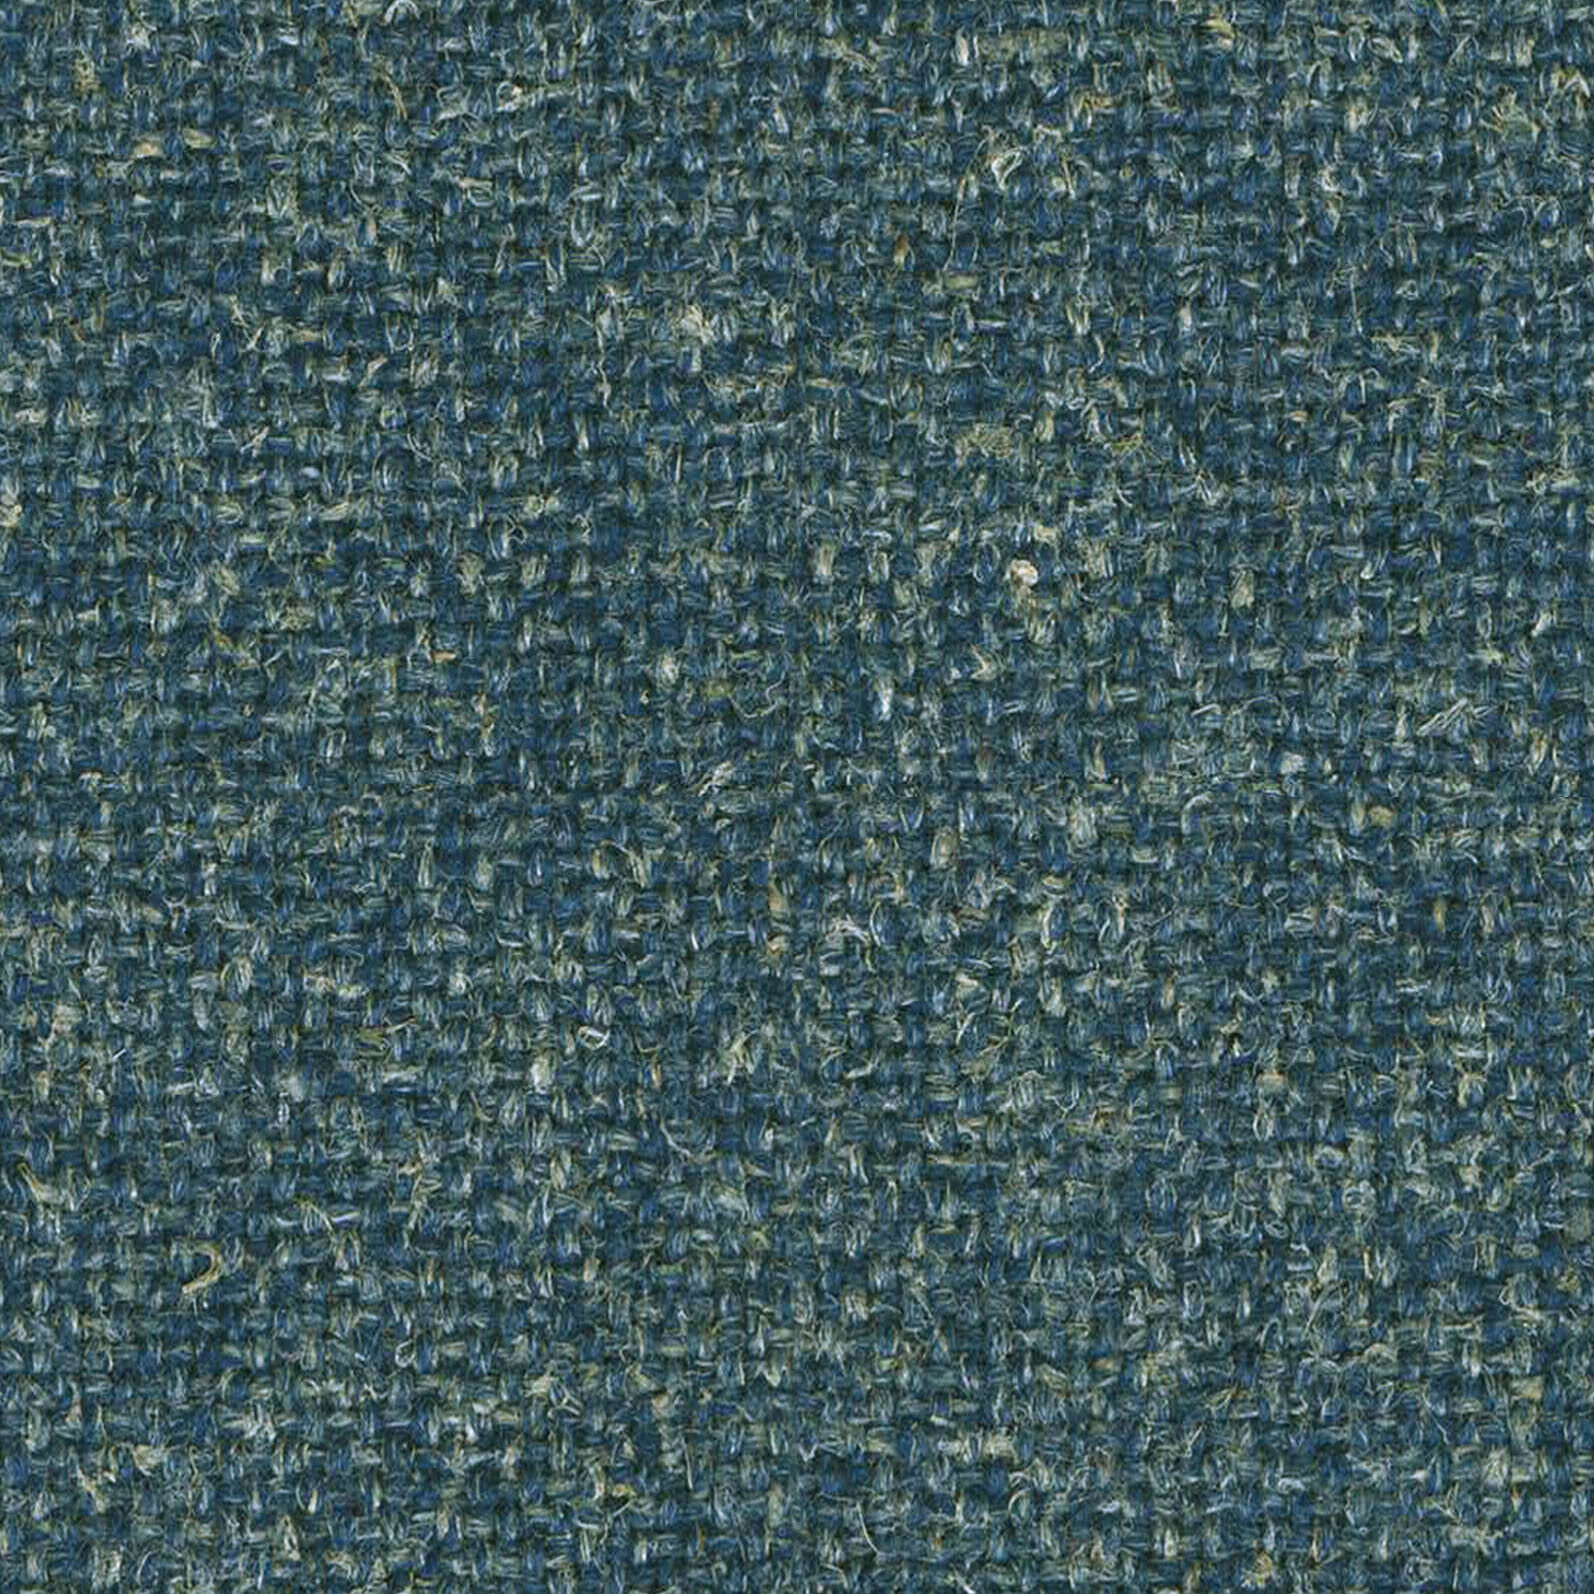 Camira Upholstery Fabric Hemp Trough Blue Wool BY THE YARD HWP20 PD